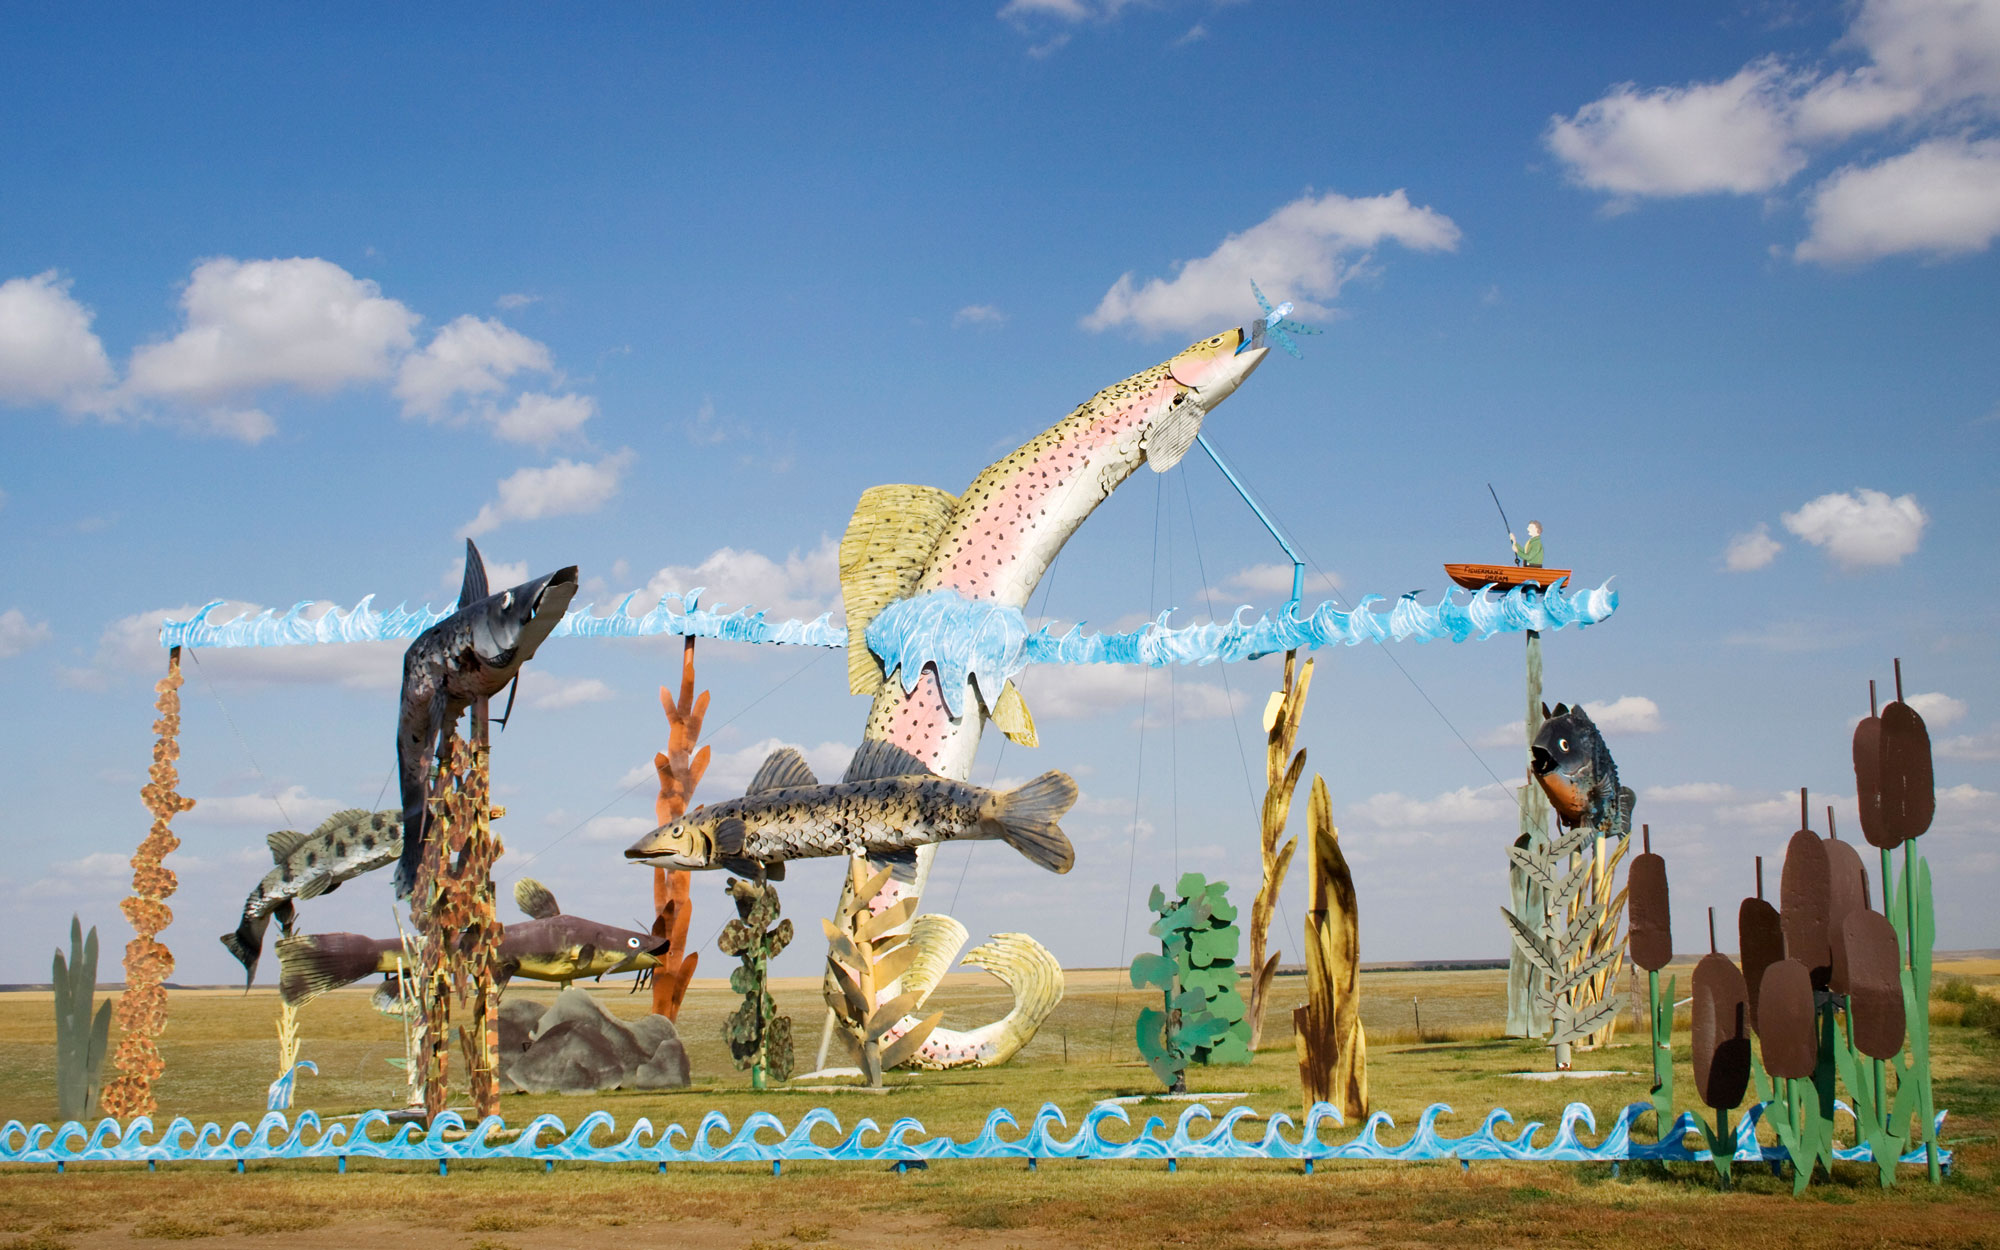 North Dakota: Enchanted Highway Sculptures